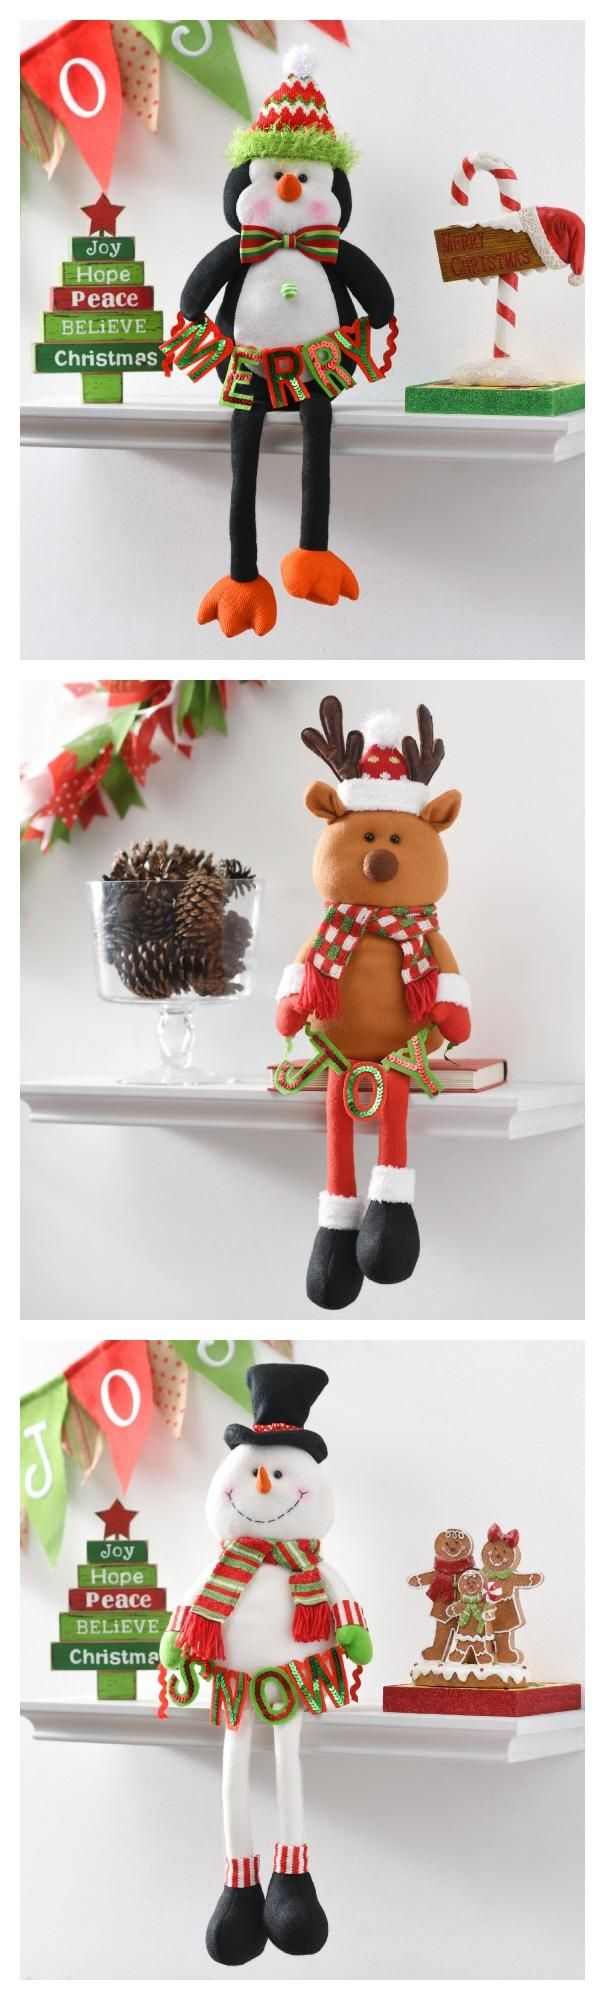 These Plush Shelf Sitters make for the perfect festive companions to spread the holiday spirit all throughout your home.